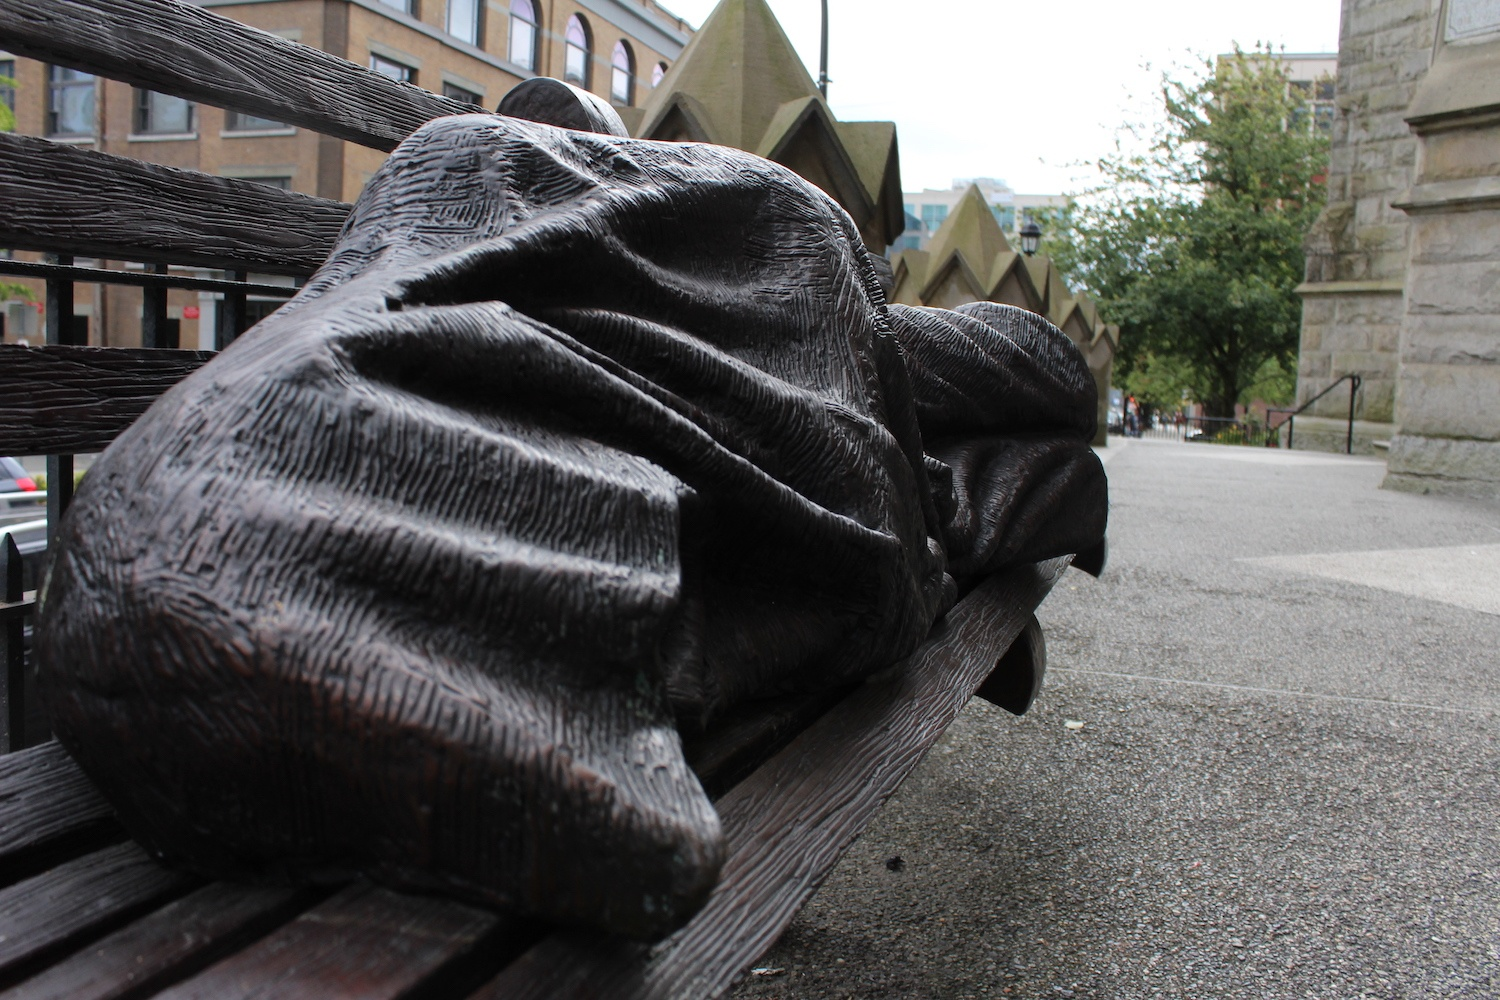 From the street the sculpture can be mistaken for a real person. (Chandler Walter/Daily Hive)